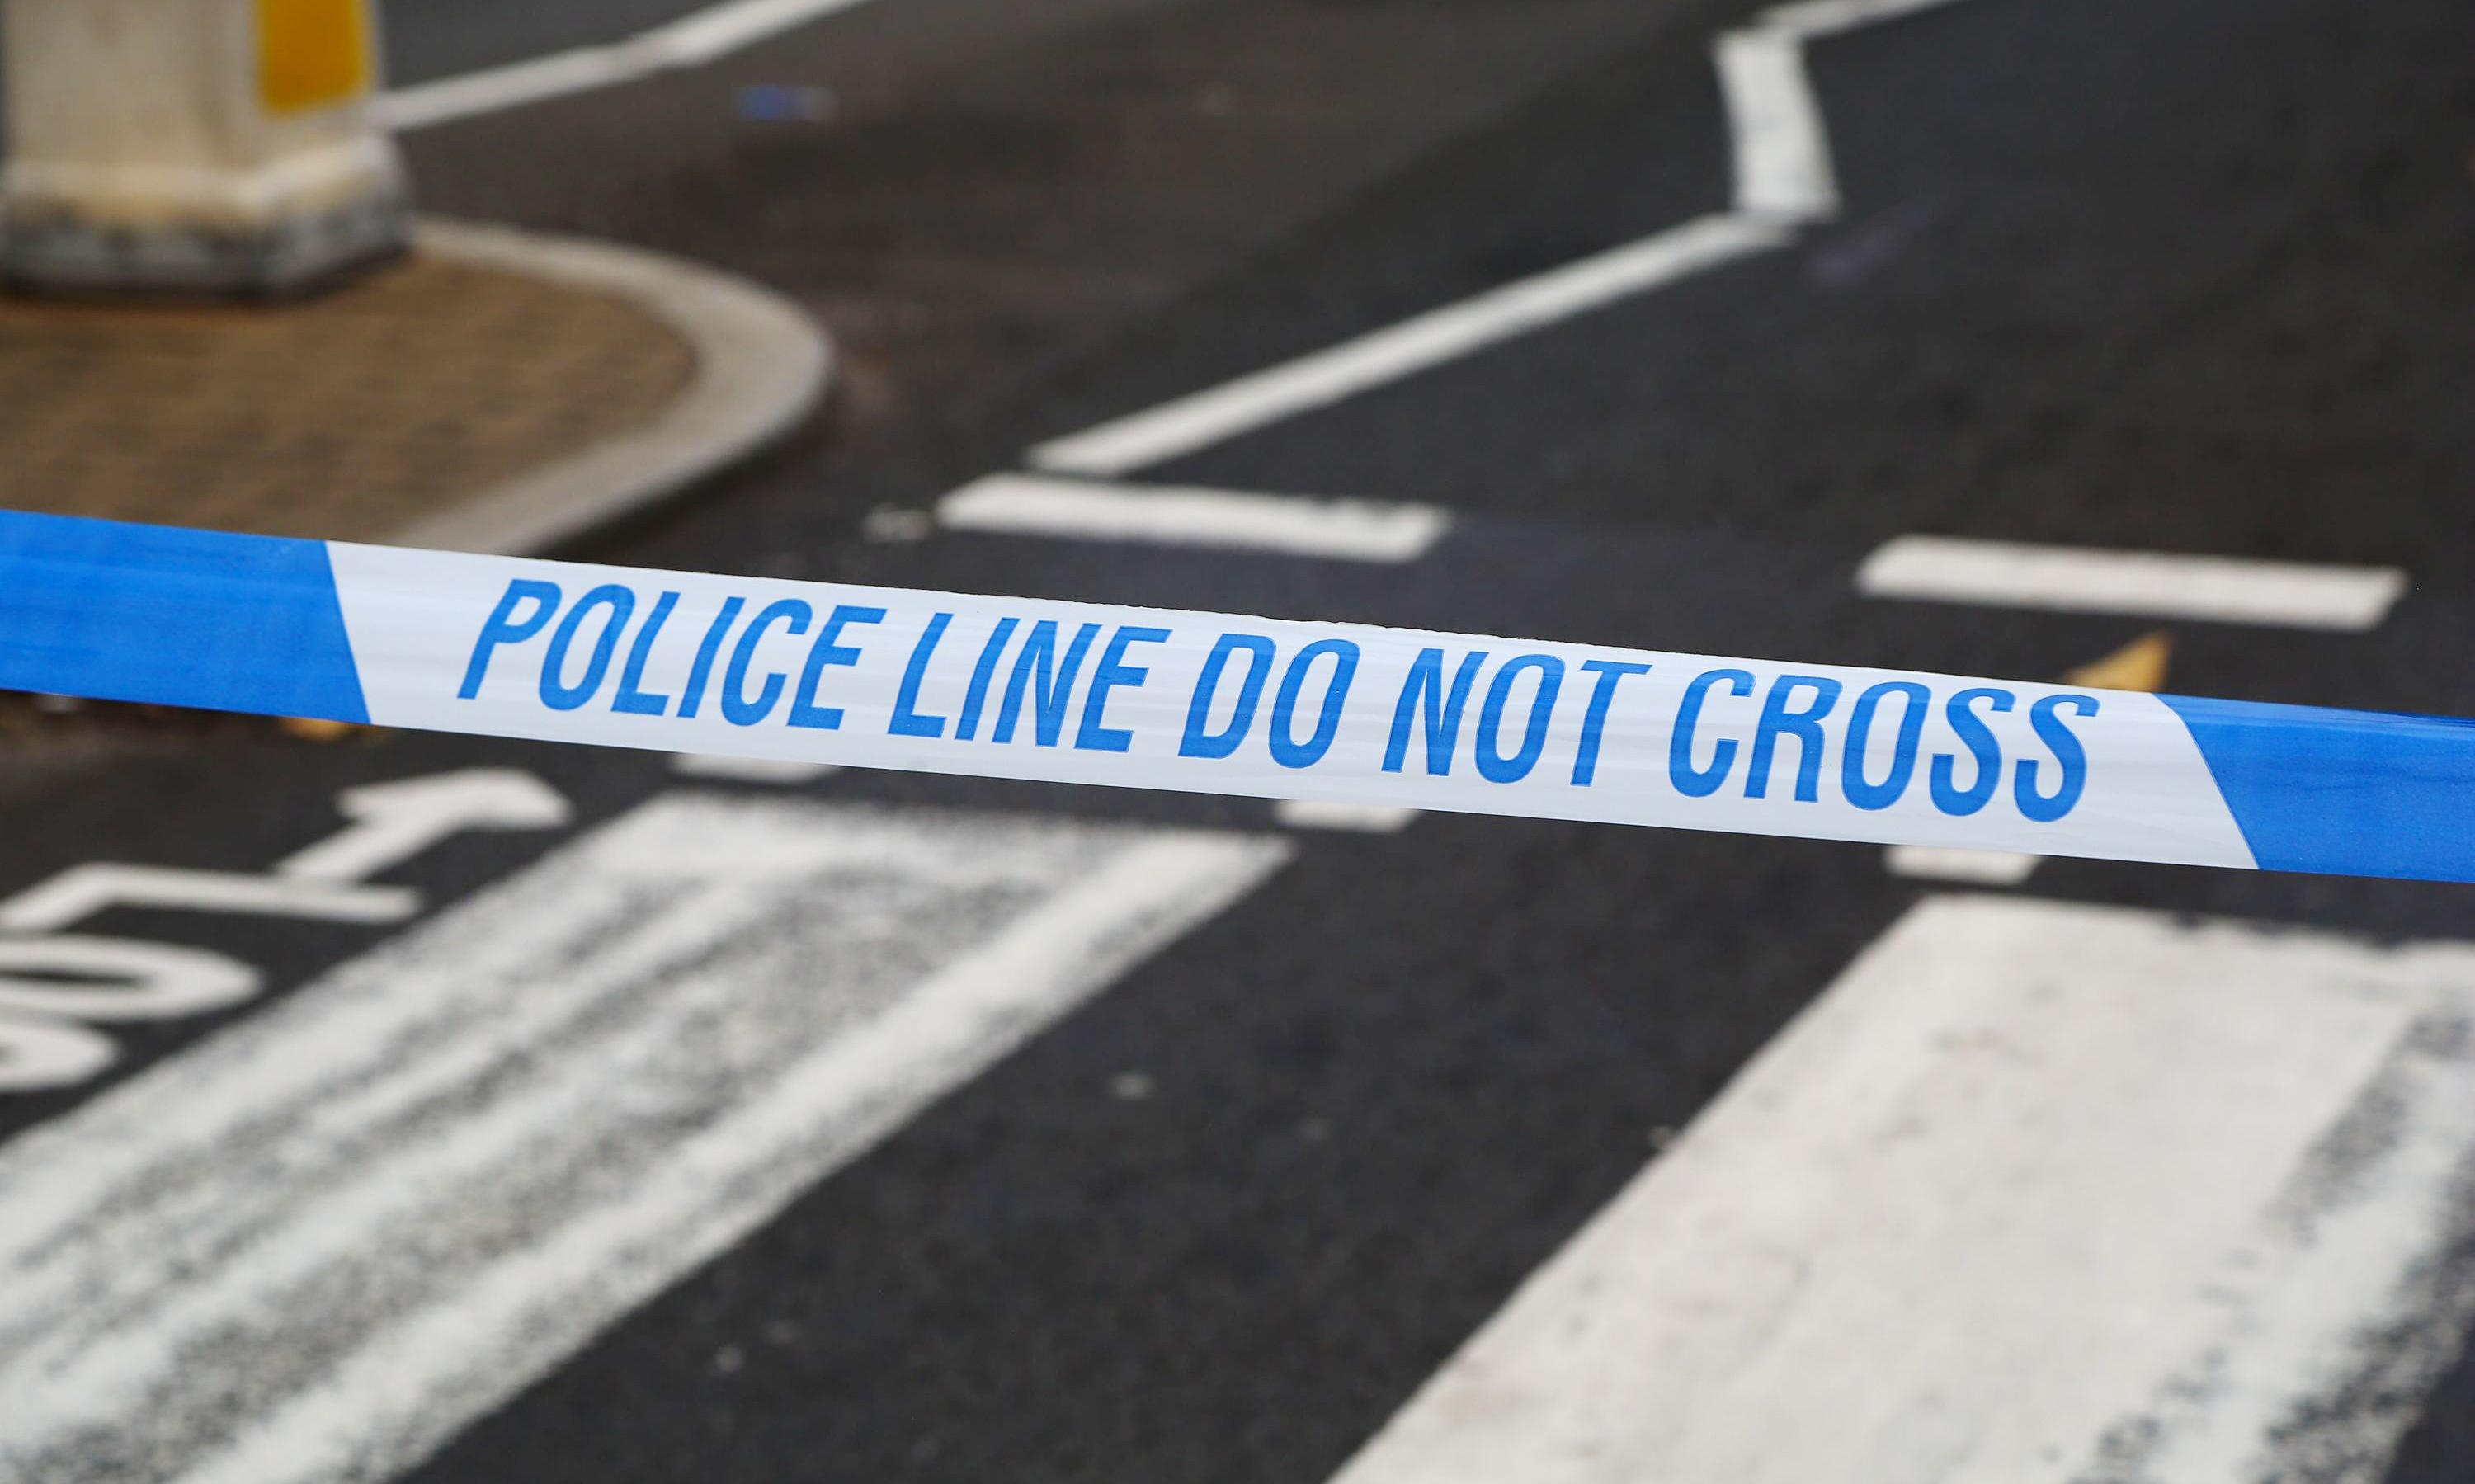 Homicides in England and Wales rise by 14%